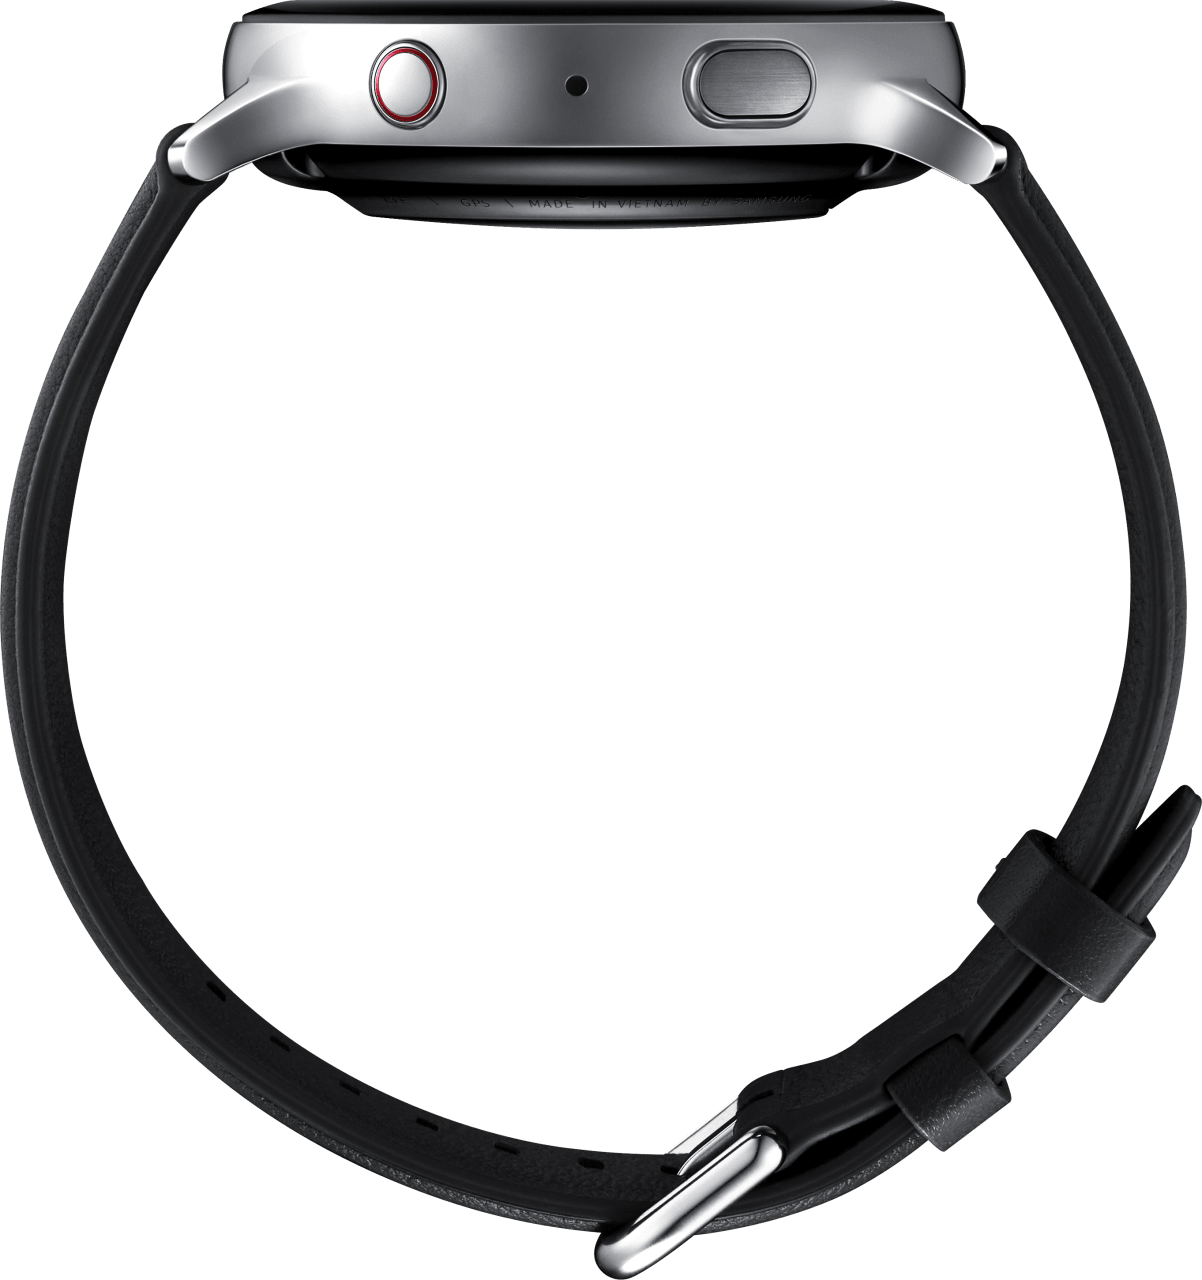 Silver Samsung Galaxy Watch Active2 (LTE), 44mm Stainless steel case, Leather band.4